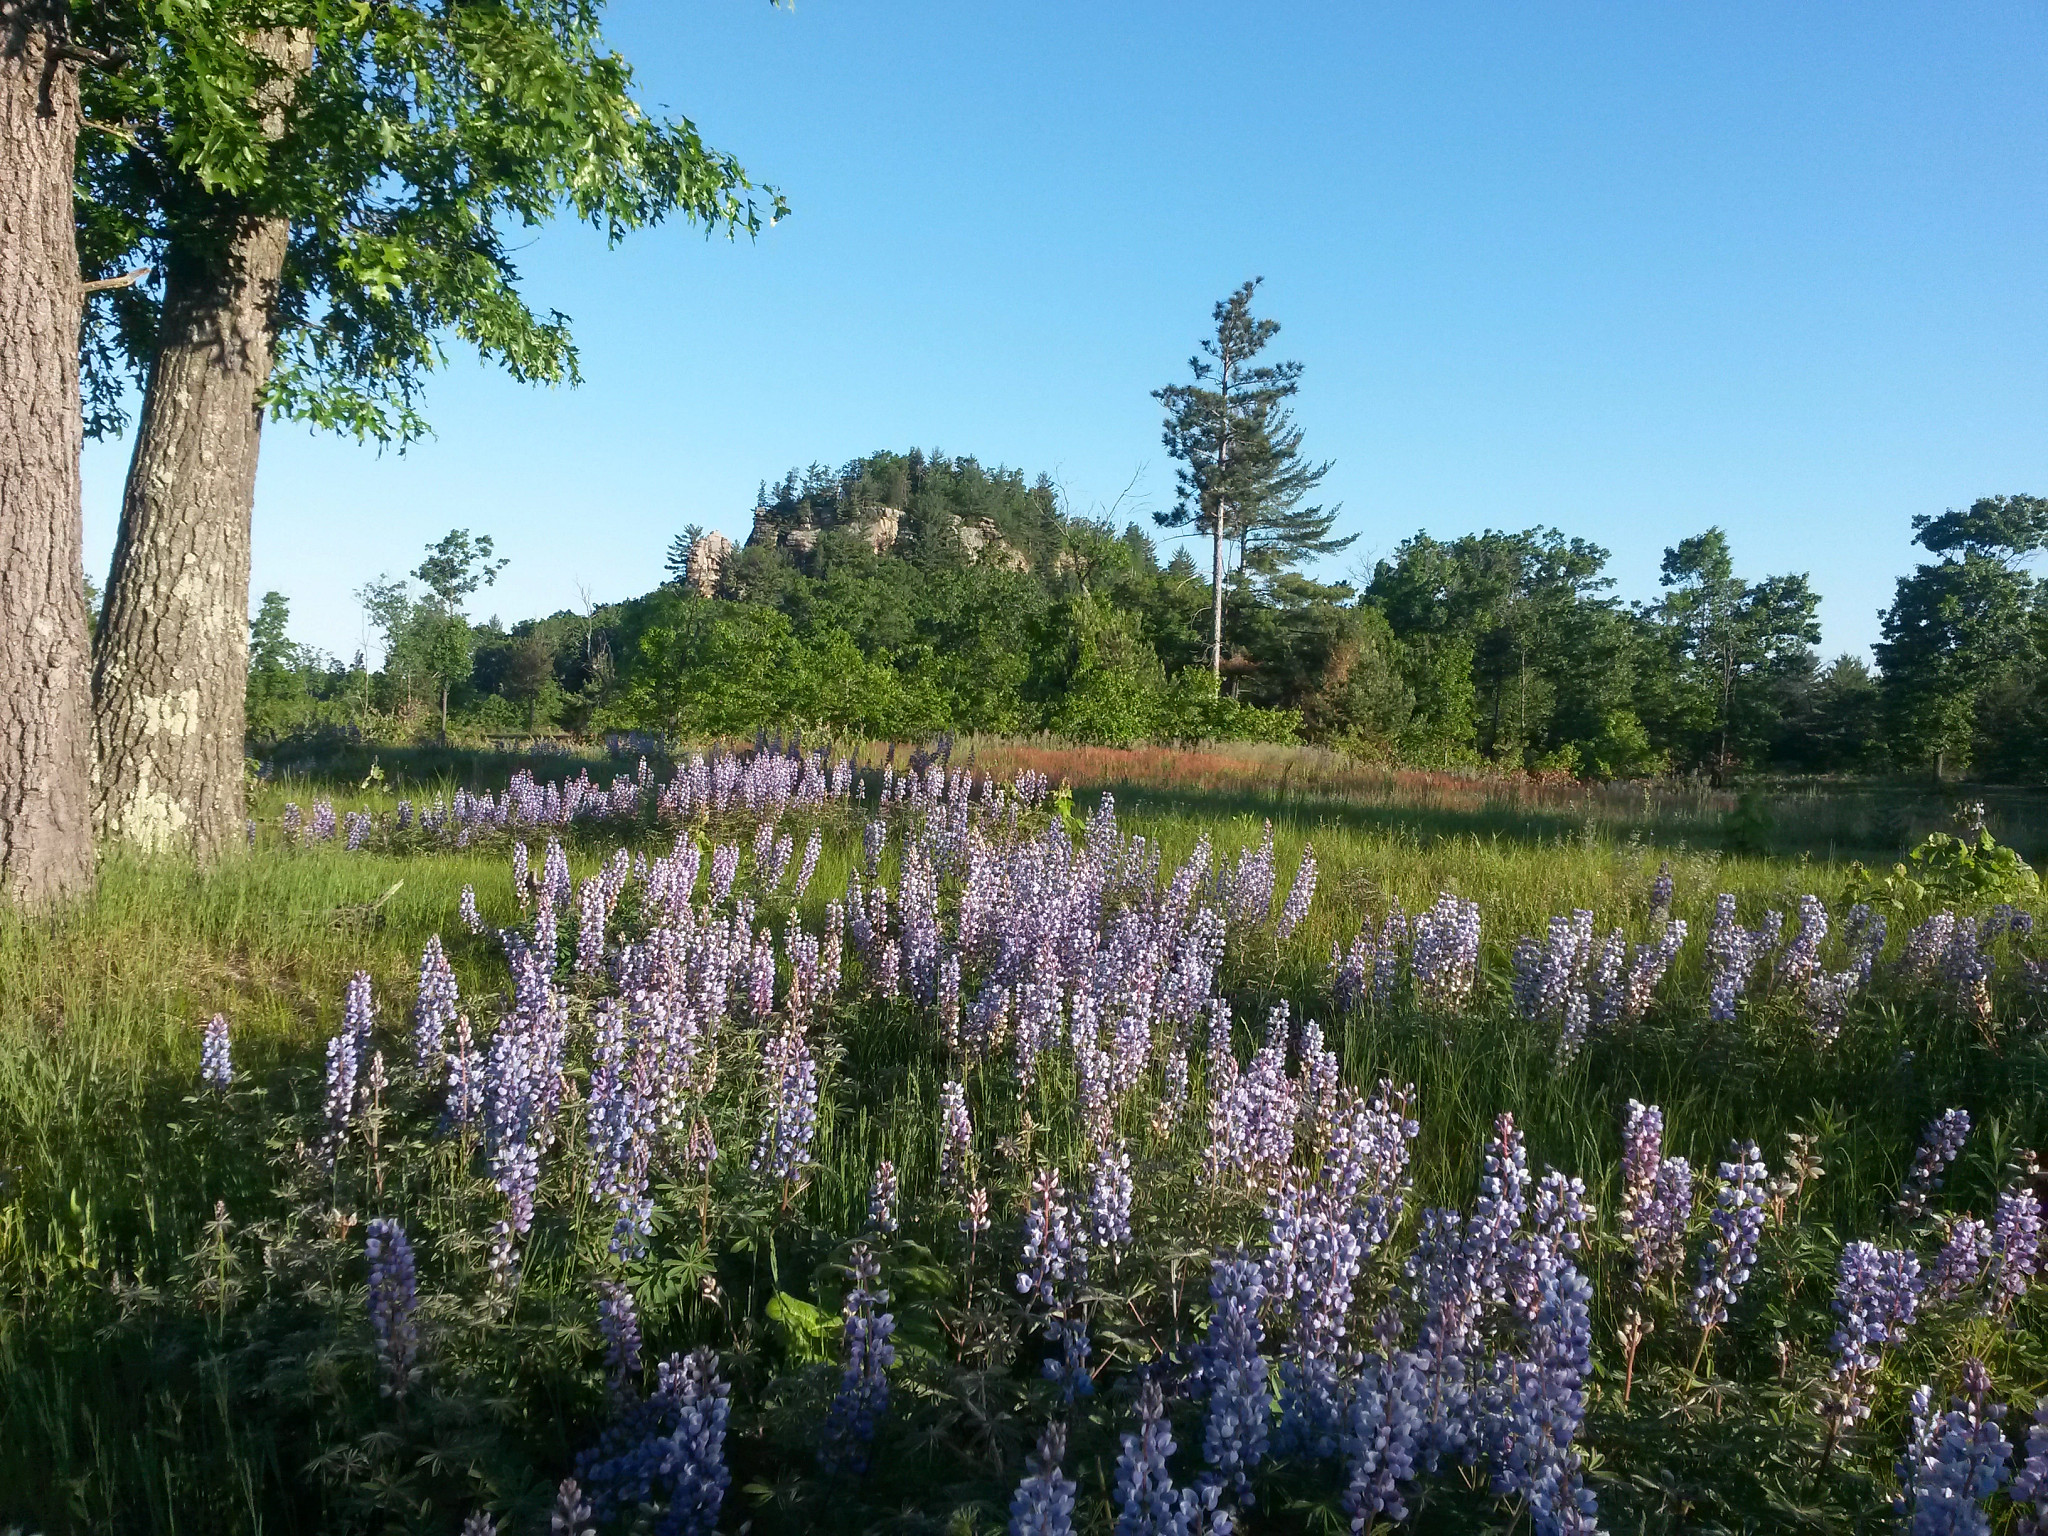 blue lupine upon a bluff at Quincy Bluff and Wetlands State Natural Area in Adams County